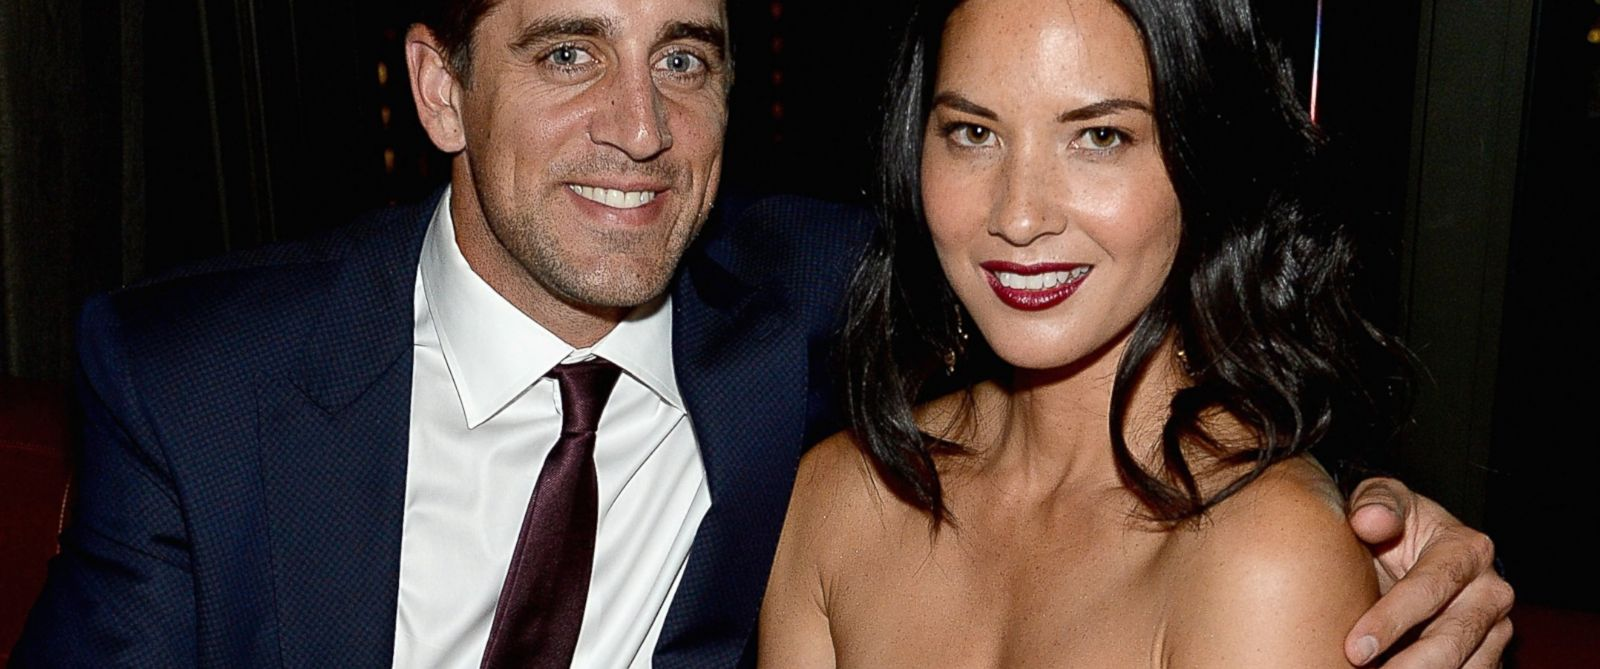 PHOTO: Aaron Rodgers and Olivia Munn at The Skylark, June 24, 2014, in New York.